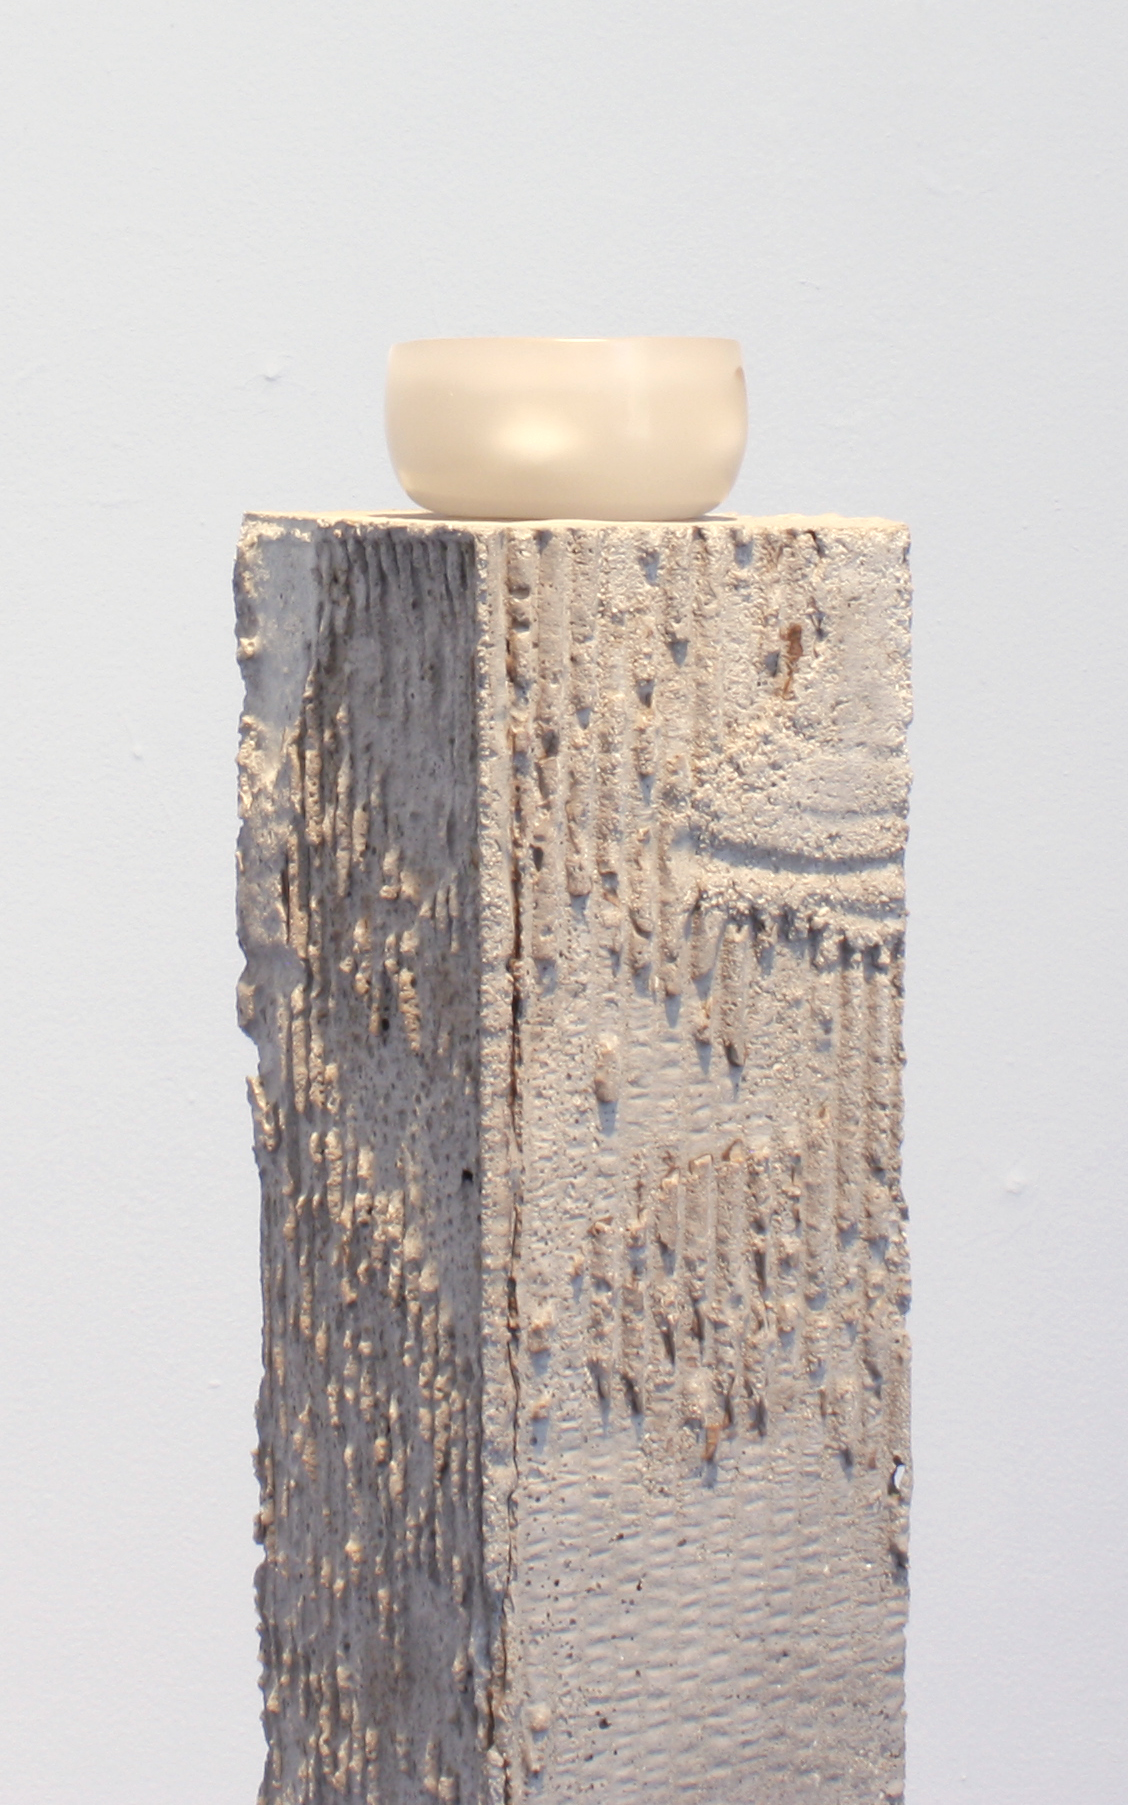 """someday    Concrete, paraffin wax, sifted earth, and light   4.5"""" x 5"""" x 38""""  2017"""